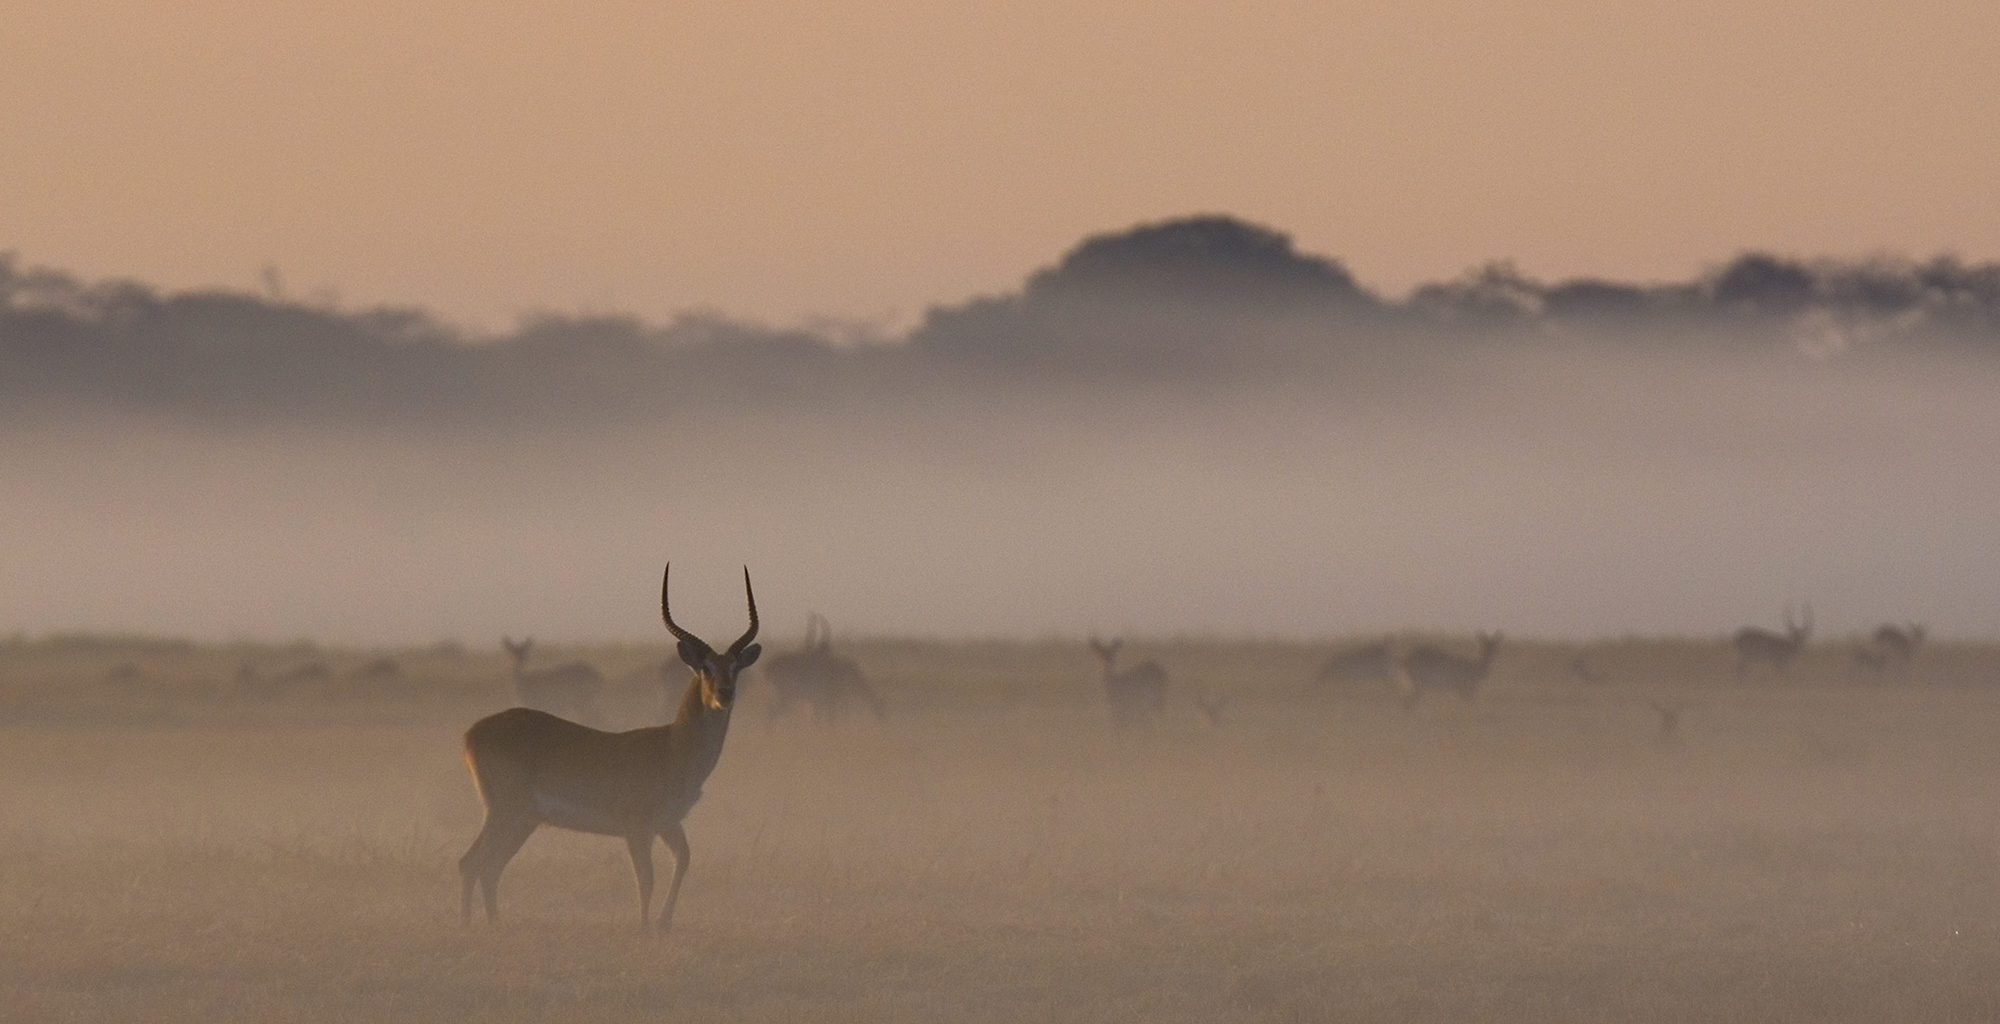 Zambia-Kafue-National-Park-Wildlife-in-Mist